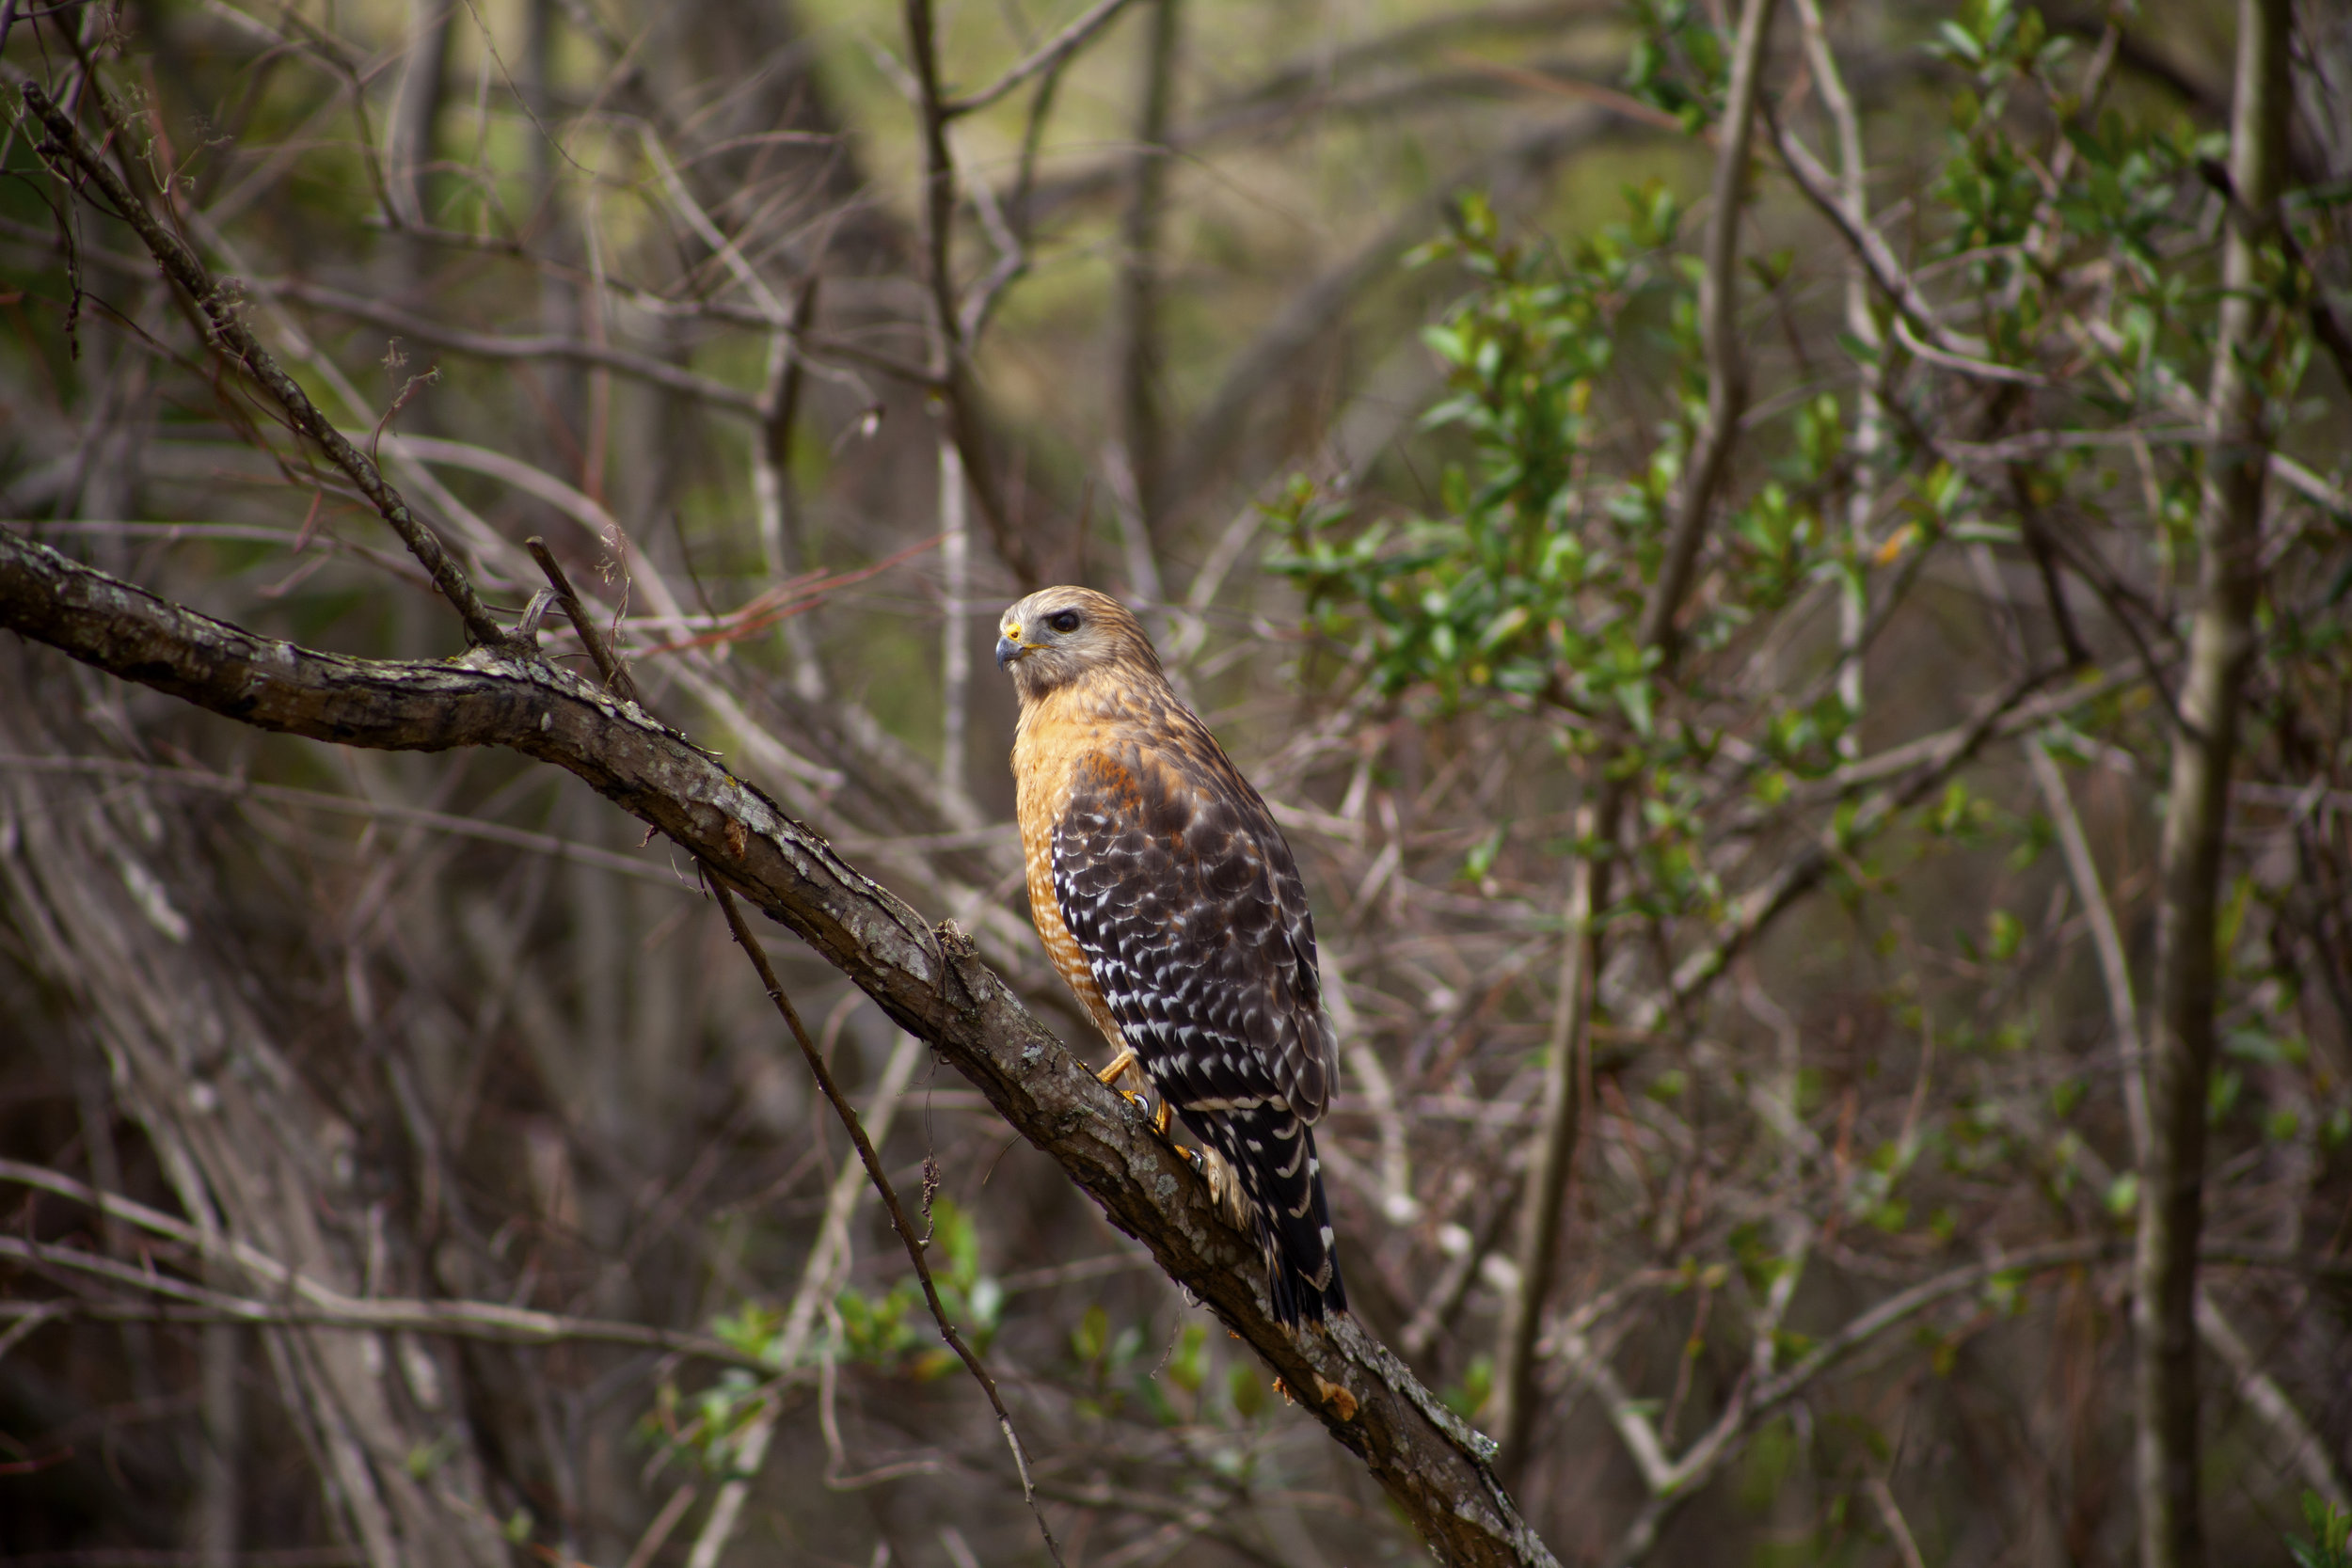 Red Shouldered Hawk -  Shot quite literally from my doorstep, very lucky to have a little creek right near my apartment. I looked up from cleaning my car and spotted this magnificent bird hanging out on a branch. Ran in to grab my camera and started shooting. Really happy with how this came out.